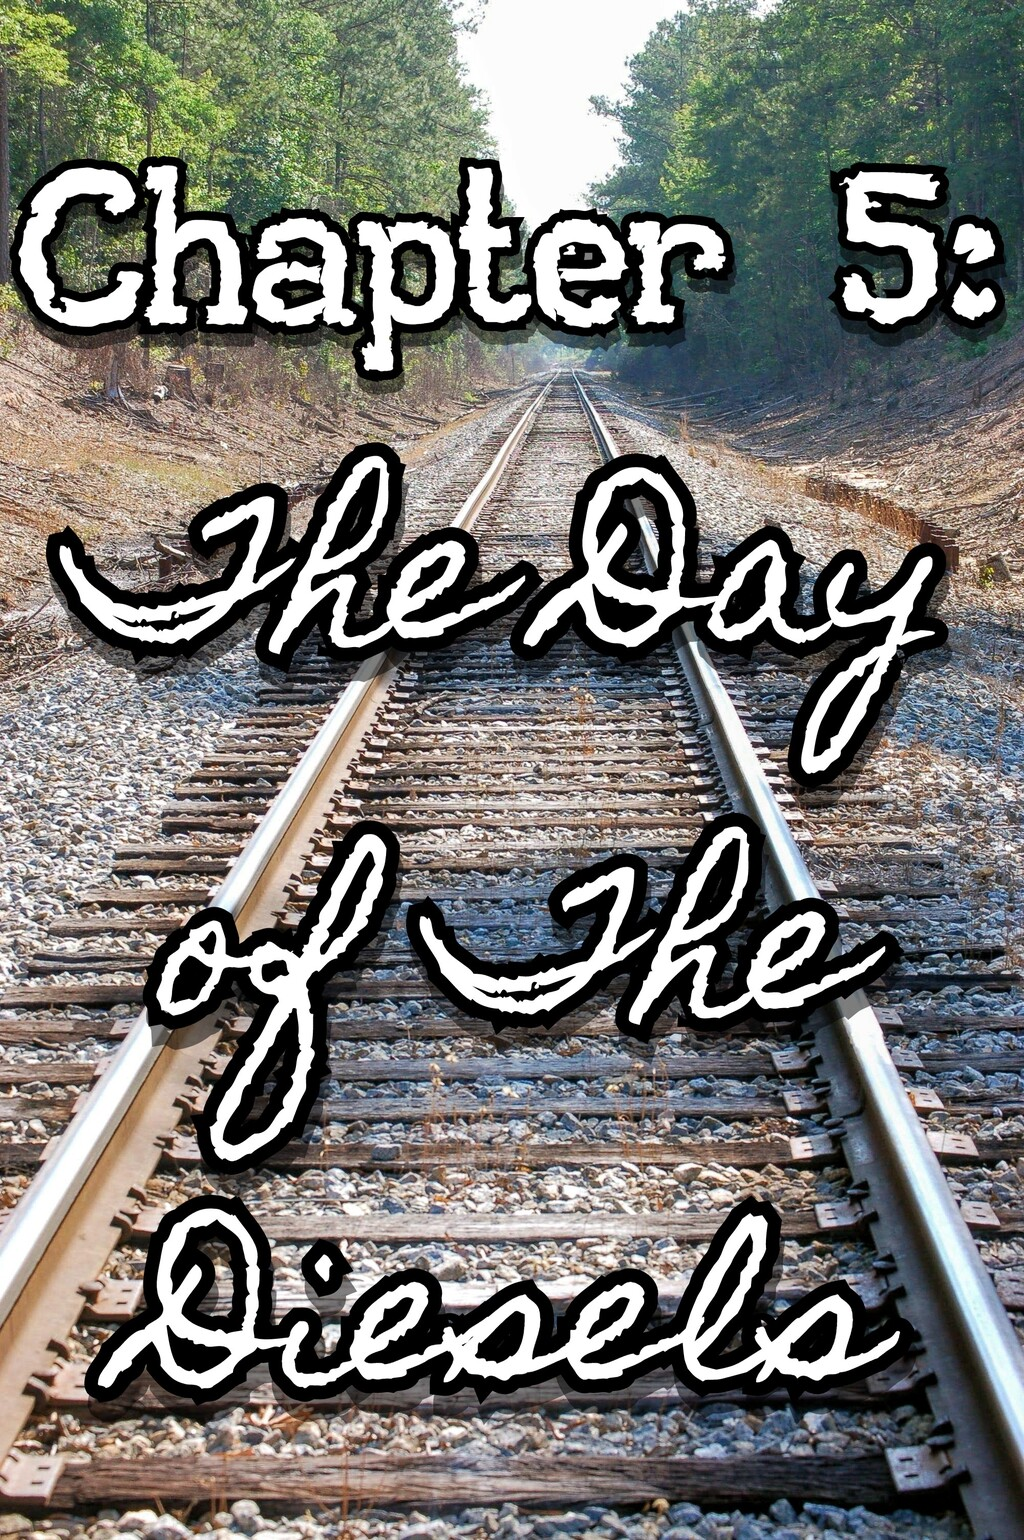 Chapter 5: The Day of The Diesels